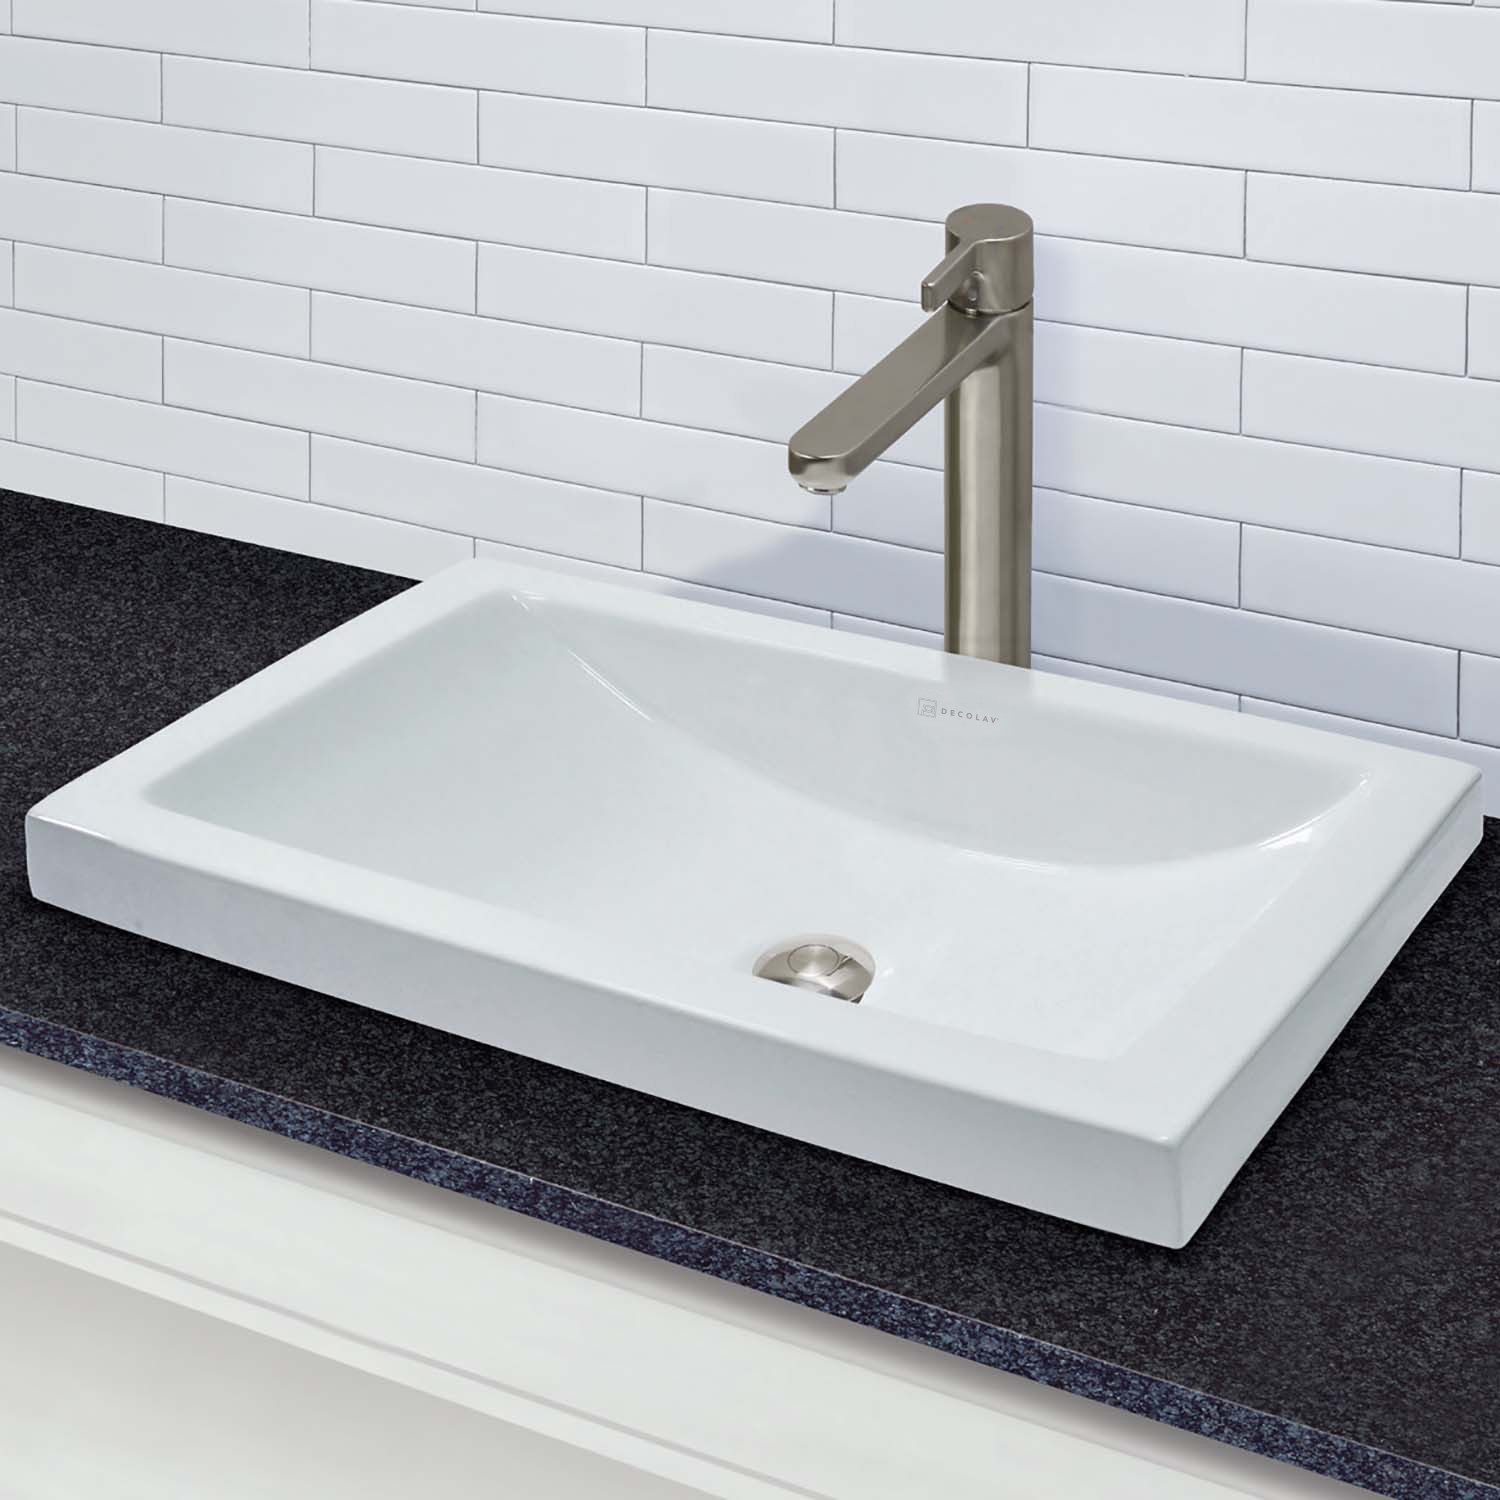 Rectangular Semi-Recessed Vitreous China Lavatory